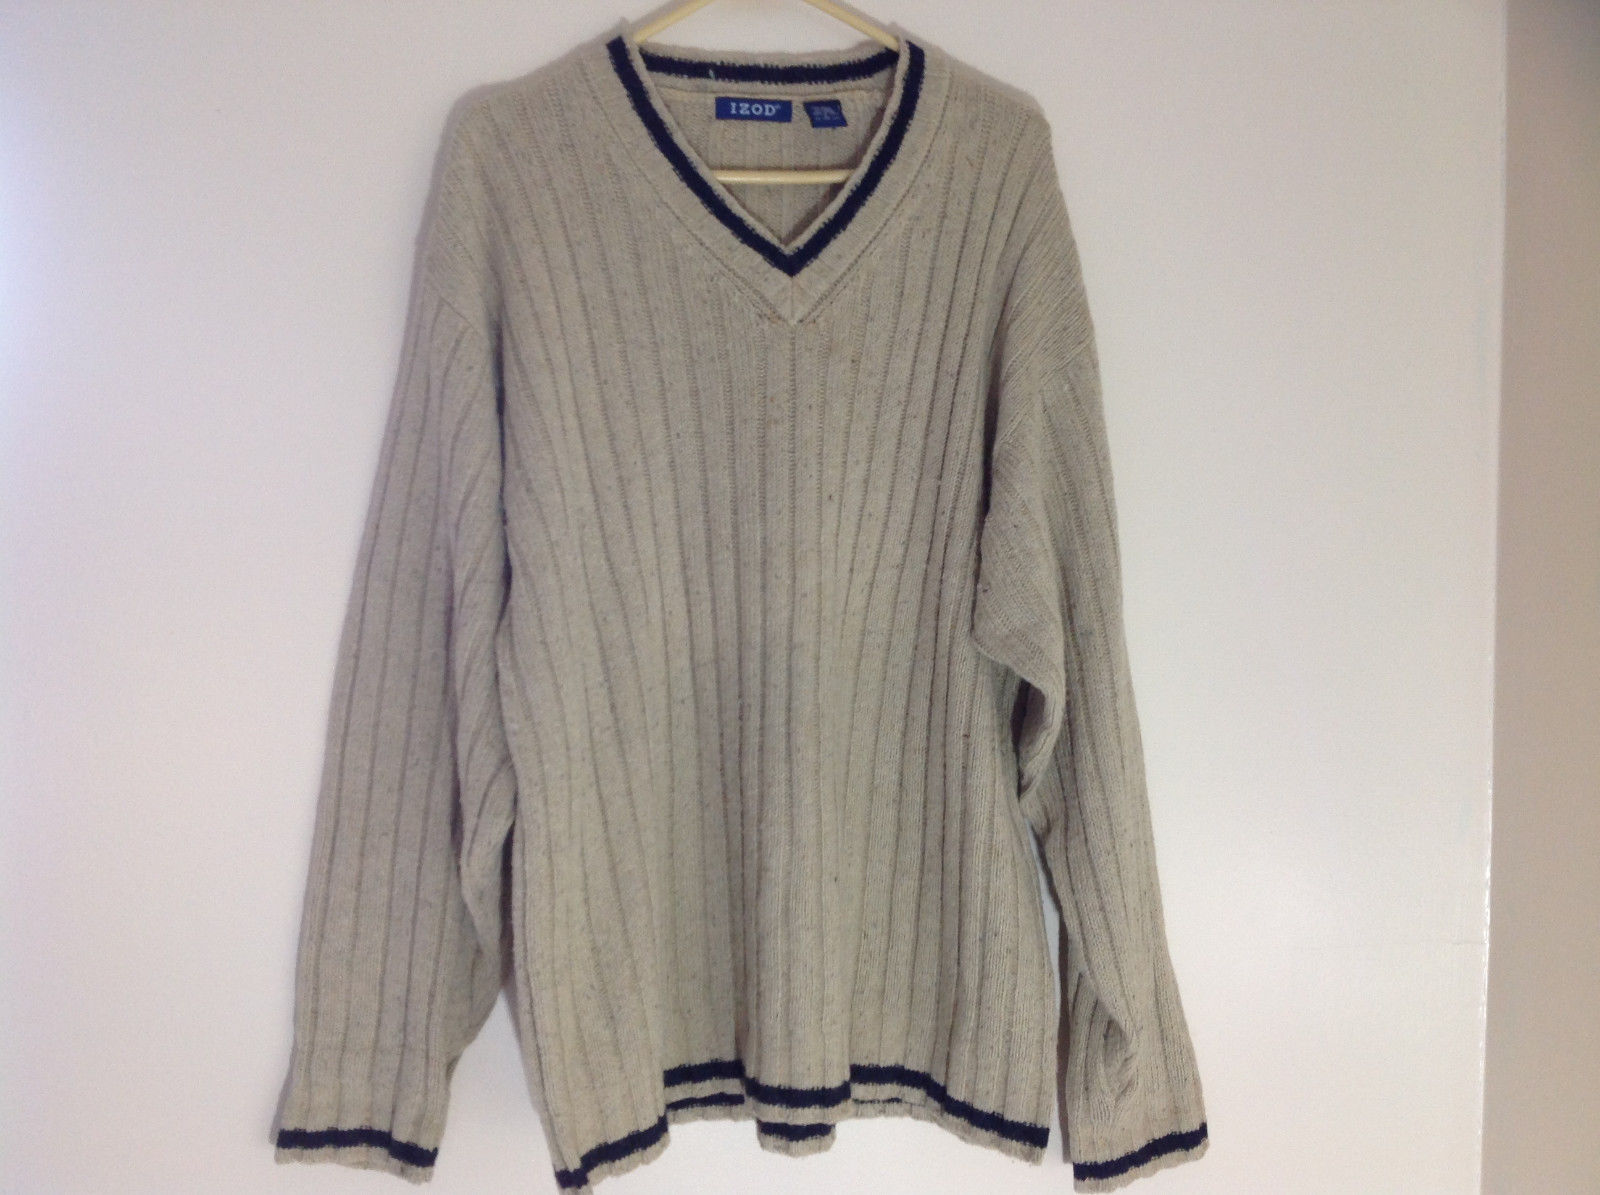 IZOD Tan V-Neckline Sweater Navy Trim Around Cuffs Neckline and Waist Size Large